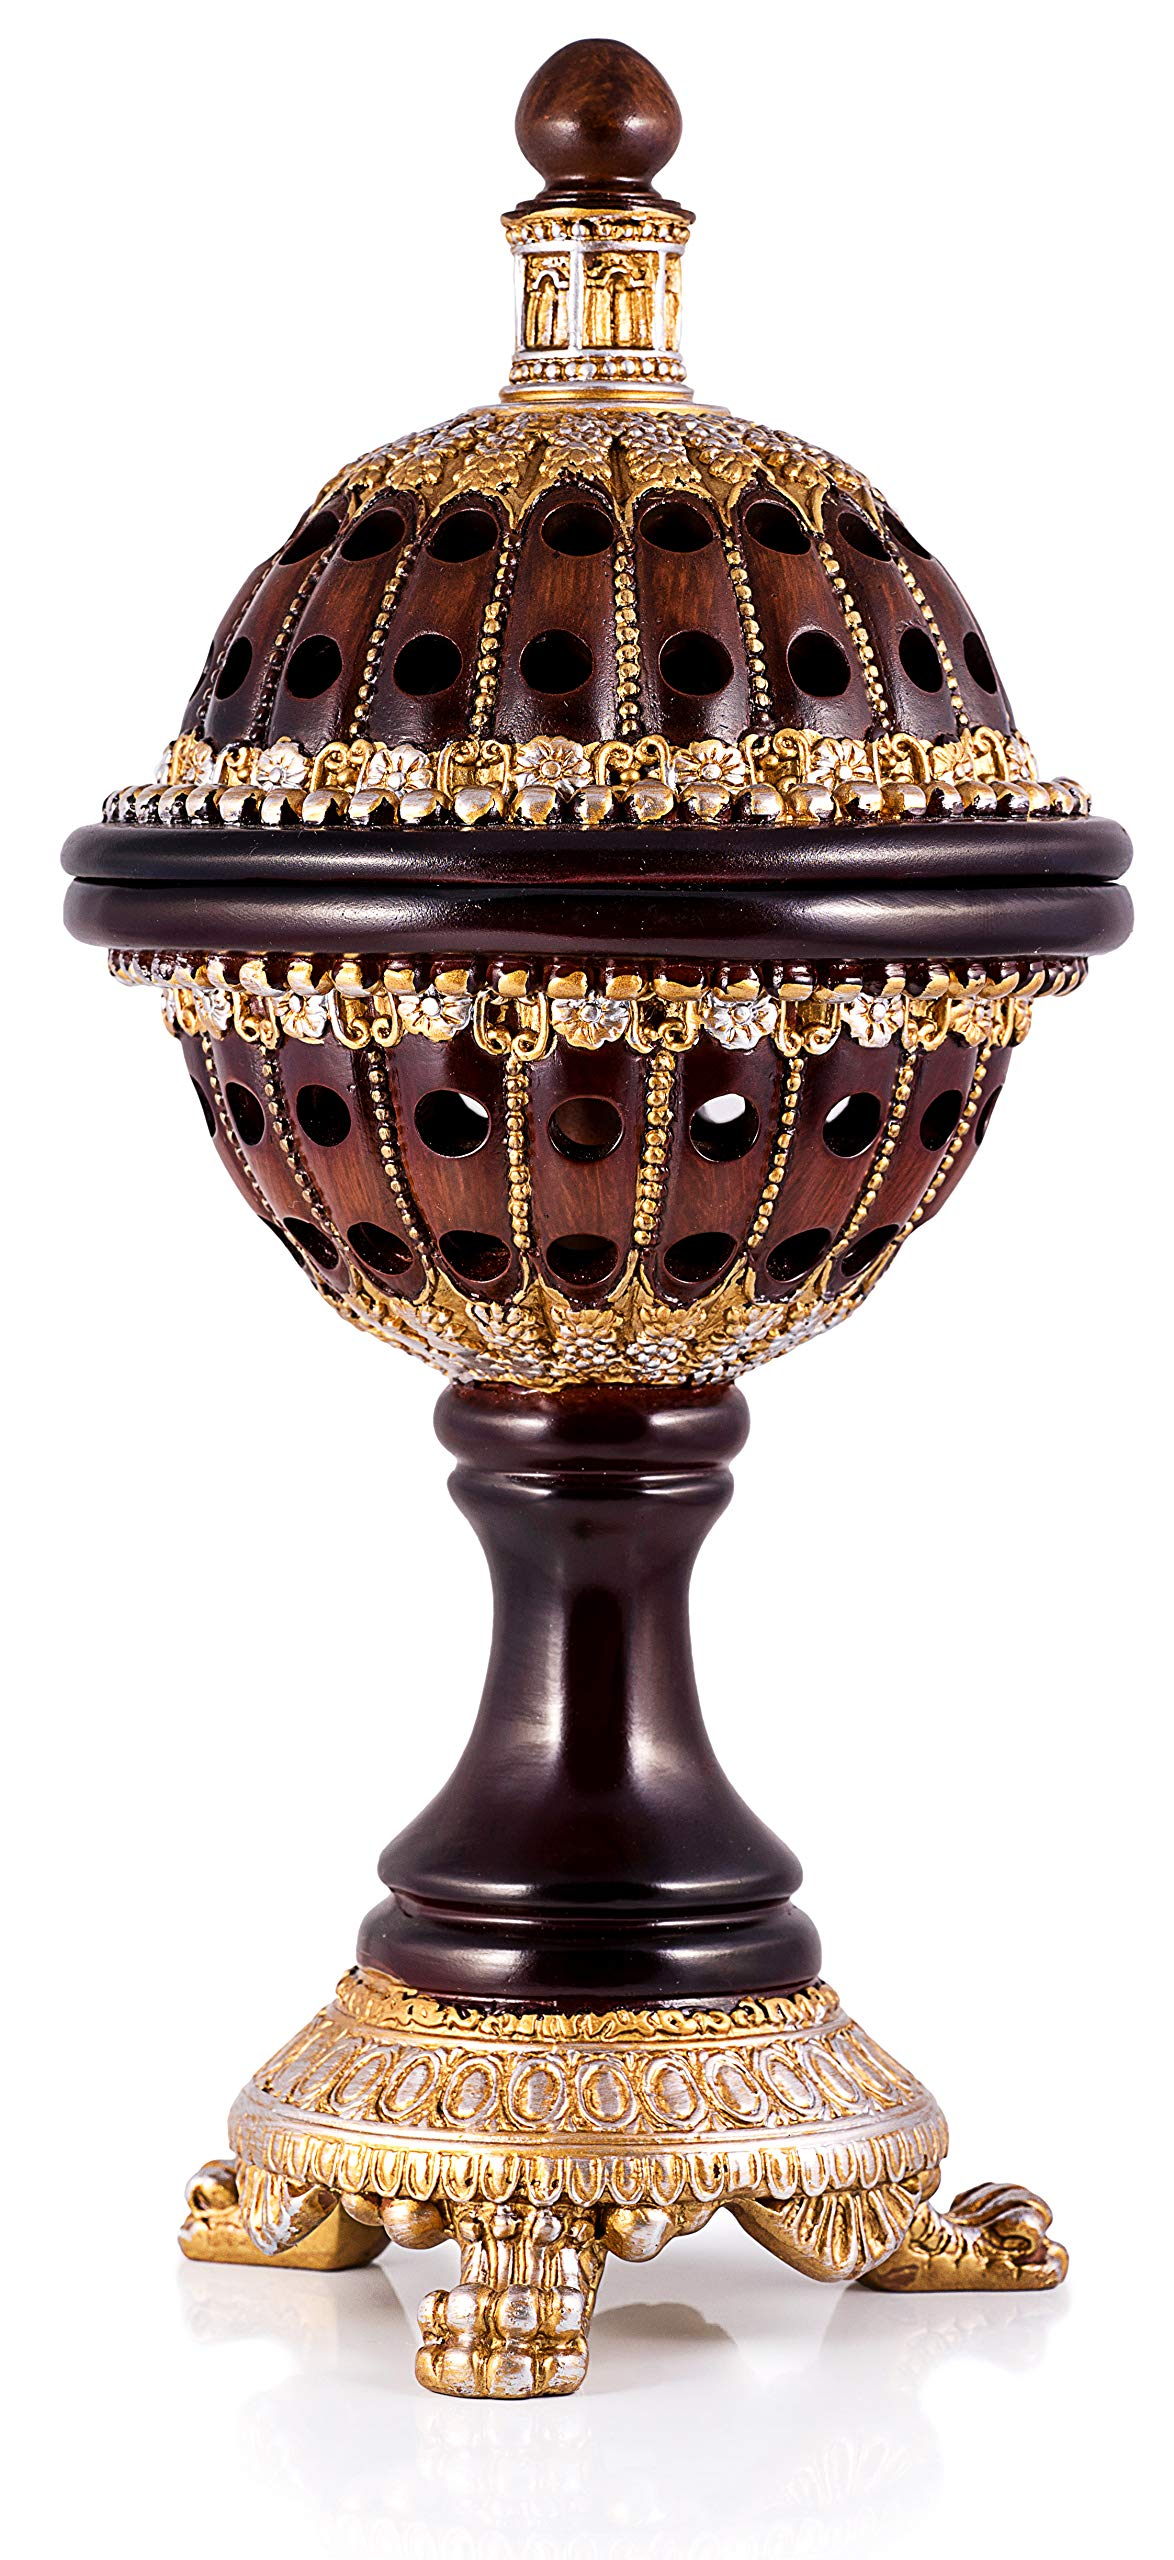 AM Incense Burner Frankincense Resin - Luxury Globe Charcoal Bakhoor Burners For Office & Home Decor